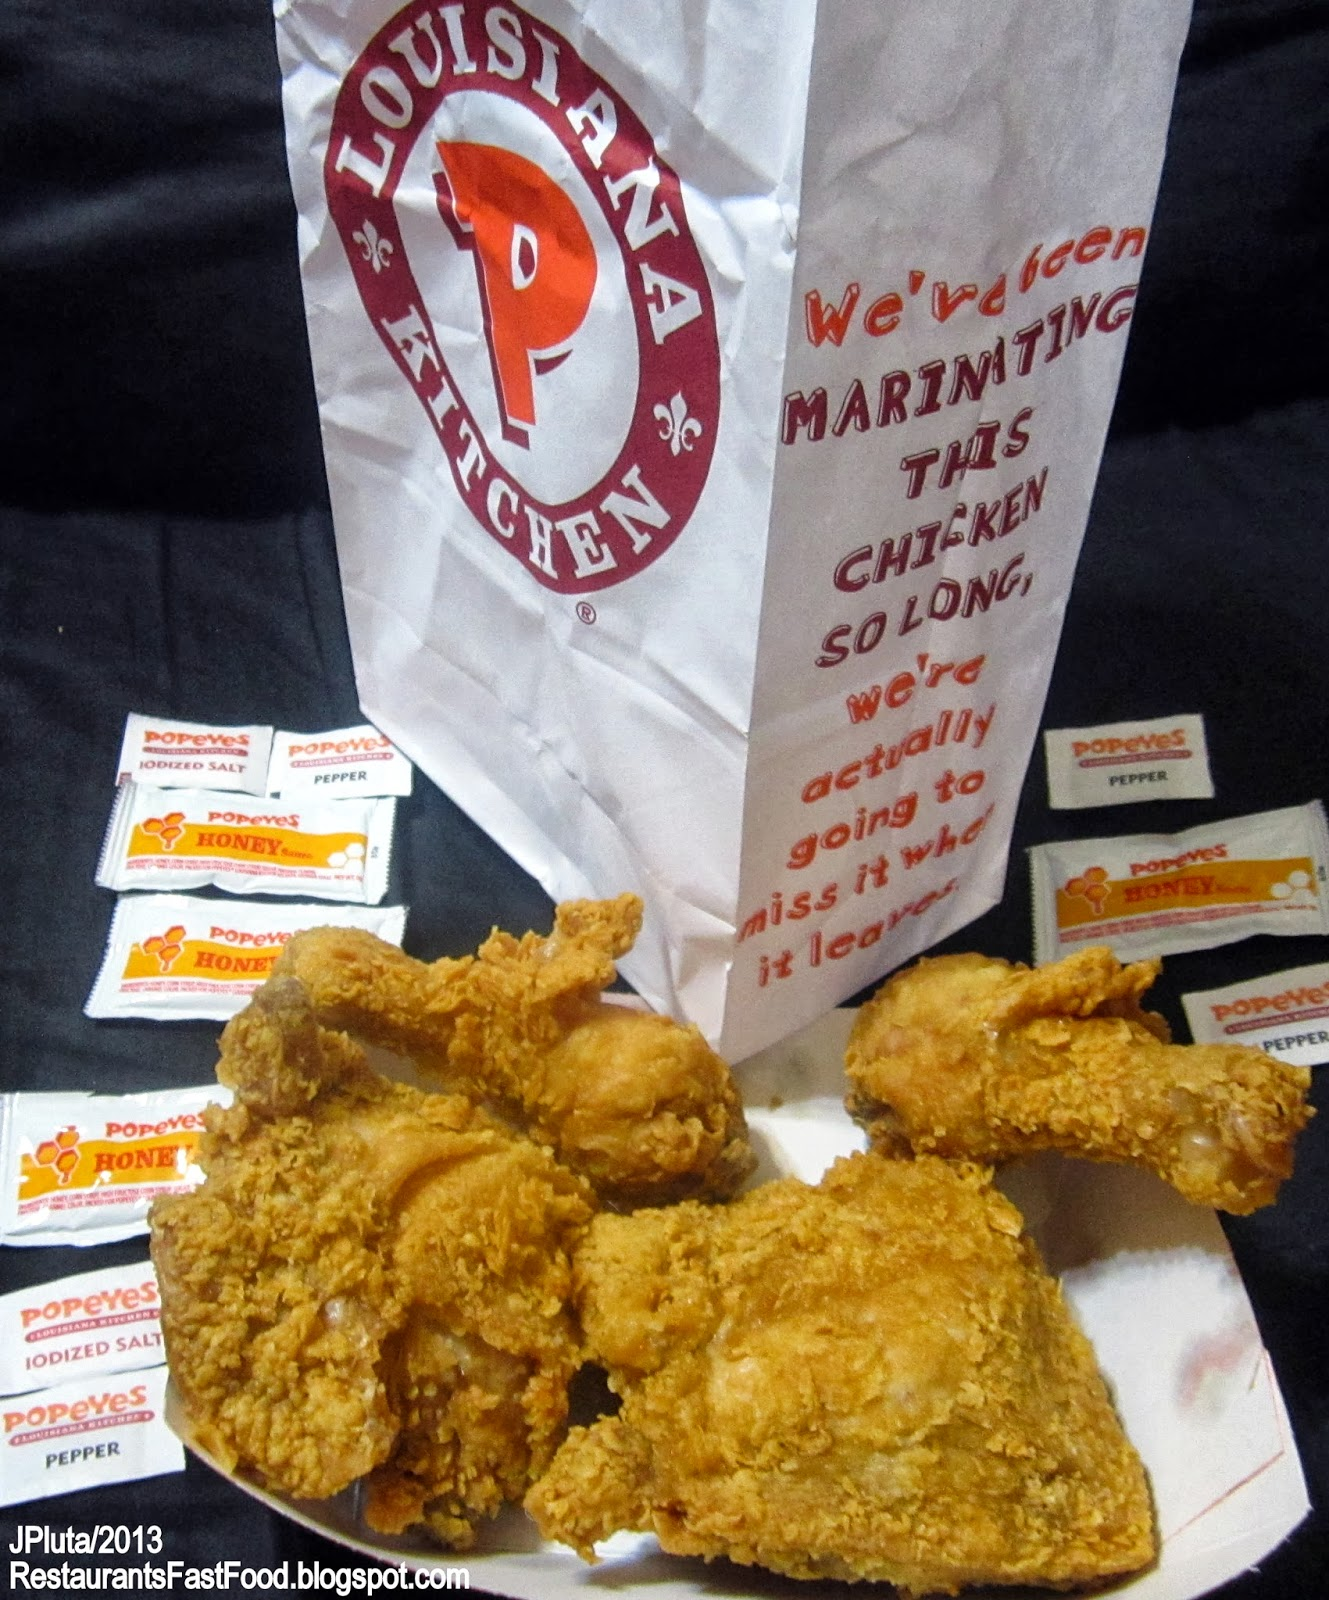 Popeyes Louisiana Kitchen Food restaurant fast food menu mcdonald's dq bk hamburger pizza mexican